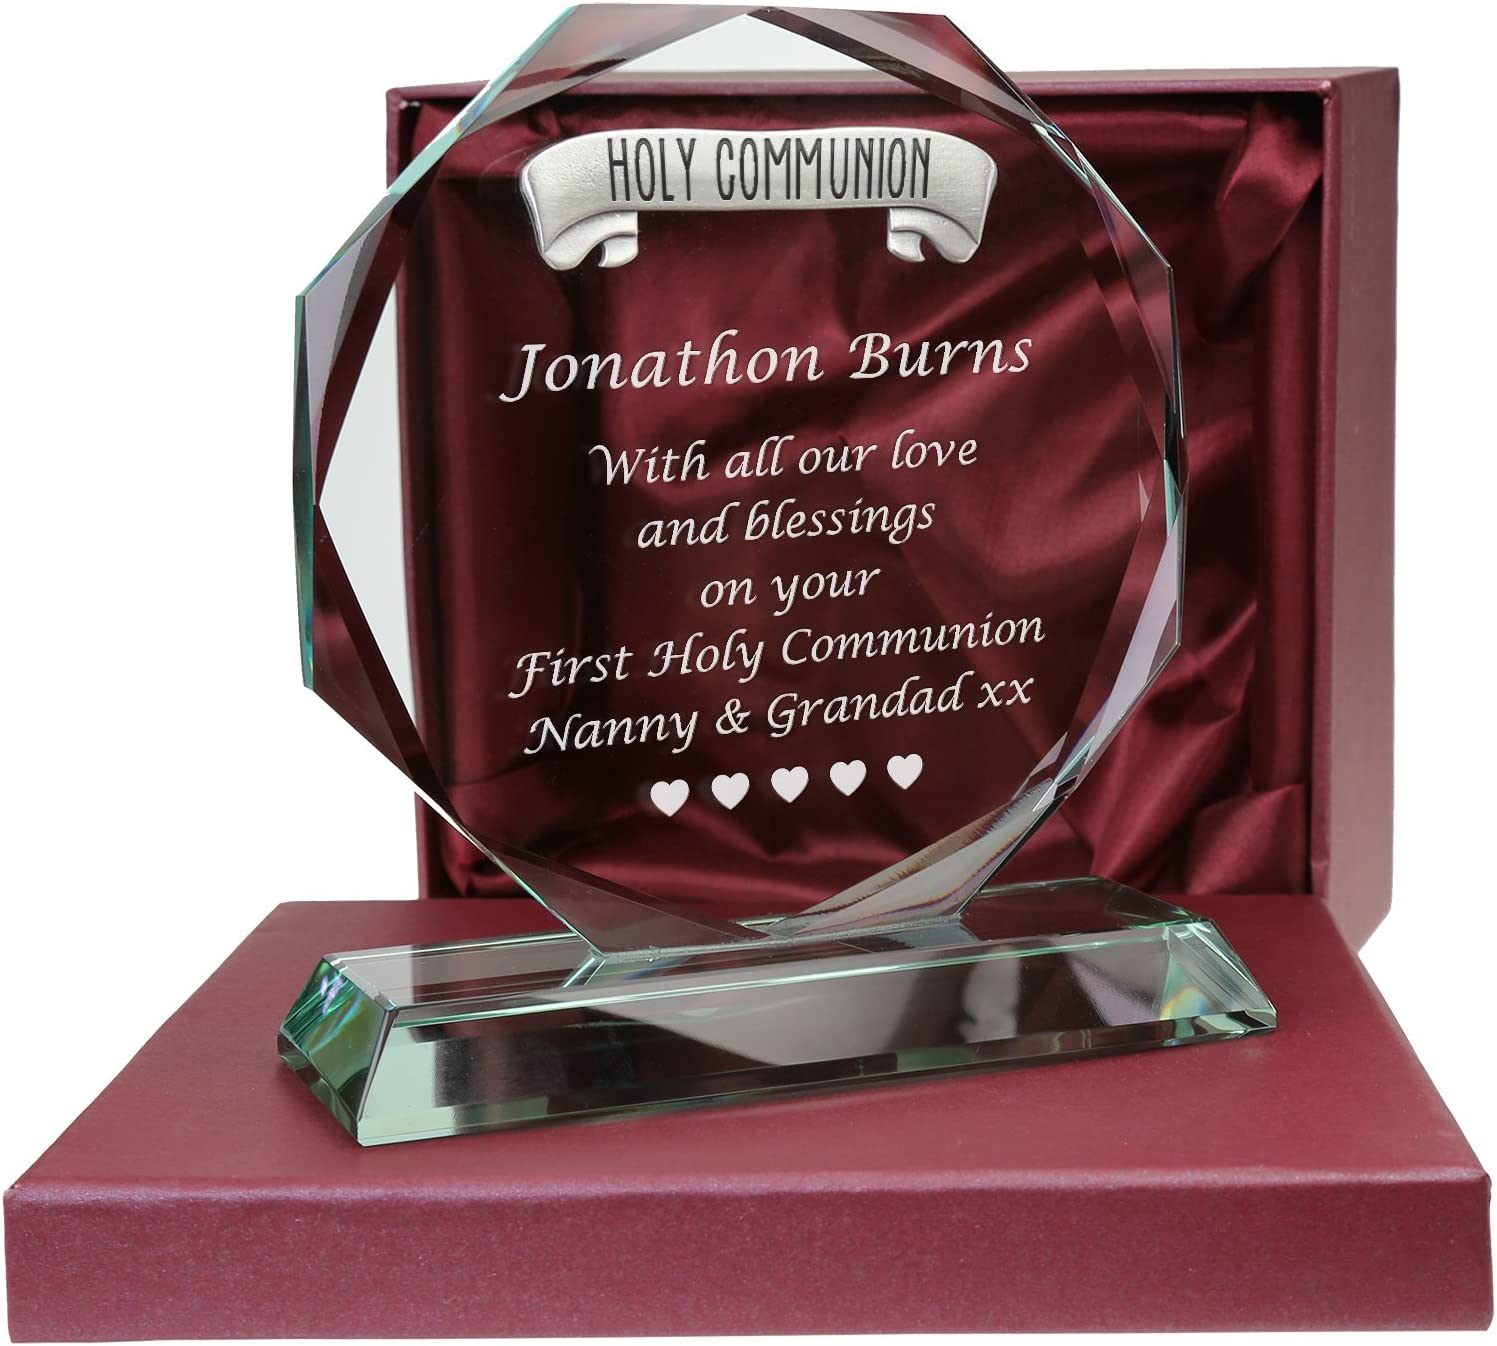 De Walden Boy S First Holy Communion Gifts Engraved Glass 1st Communion Gift Amazon Co Uk Kitchen Home